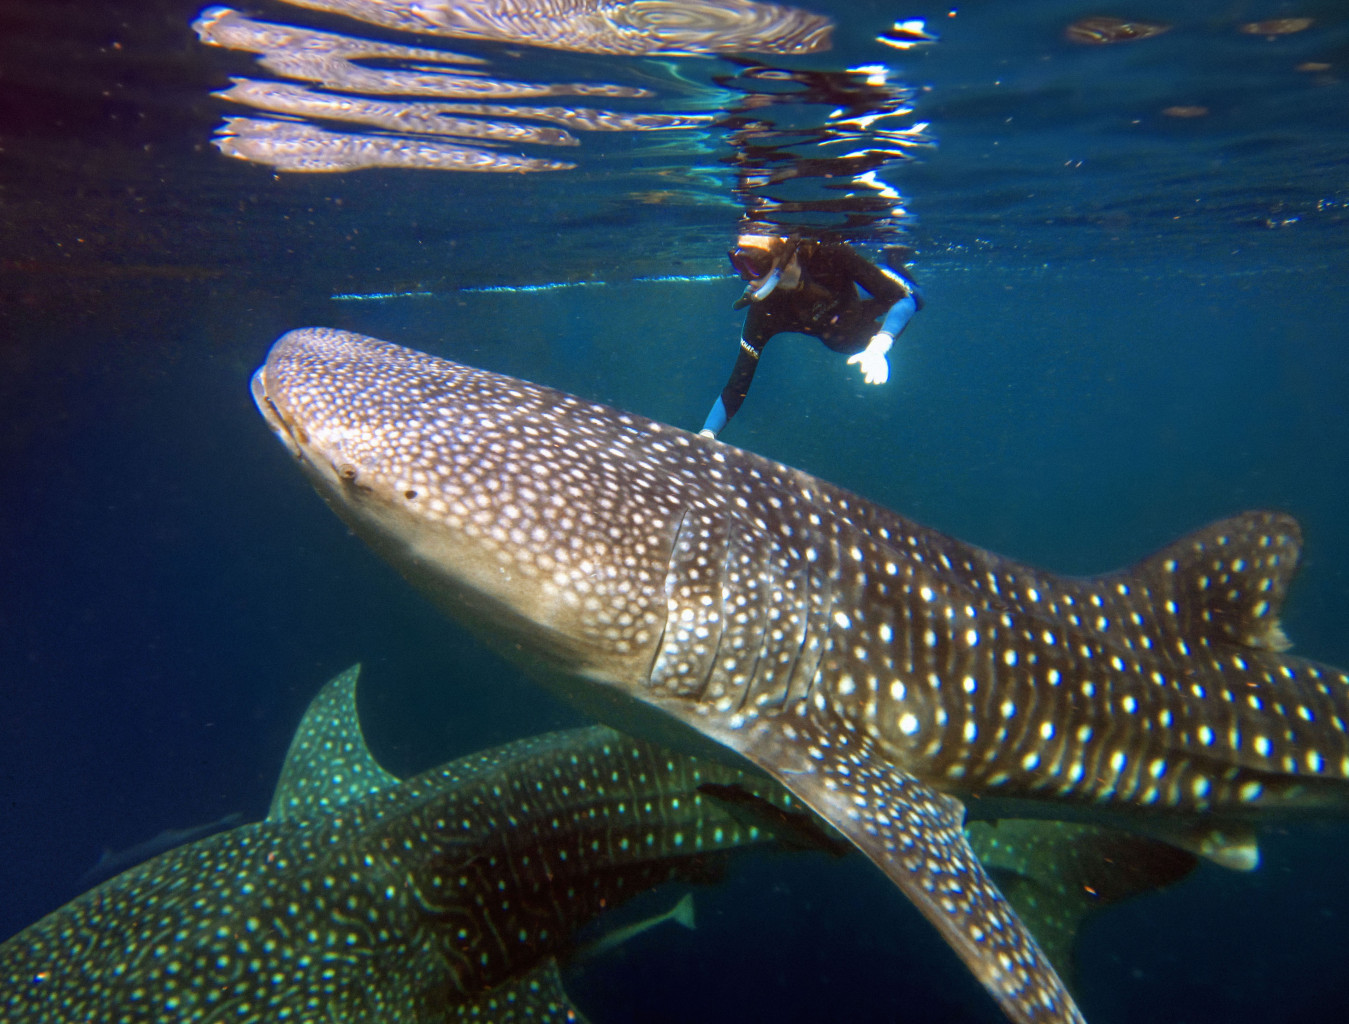 Snorkeling and scuba diving are a big draw in the eastern islands of Indonesia. * Photo: Silolona Sojourns